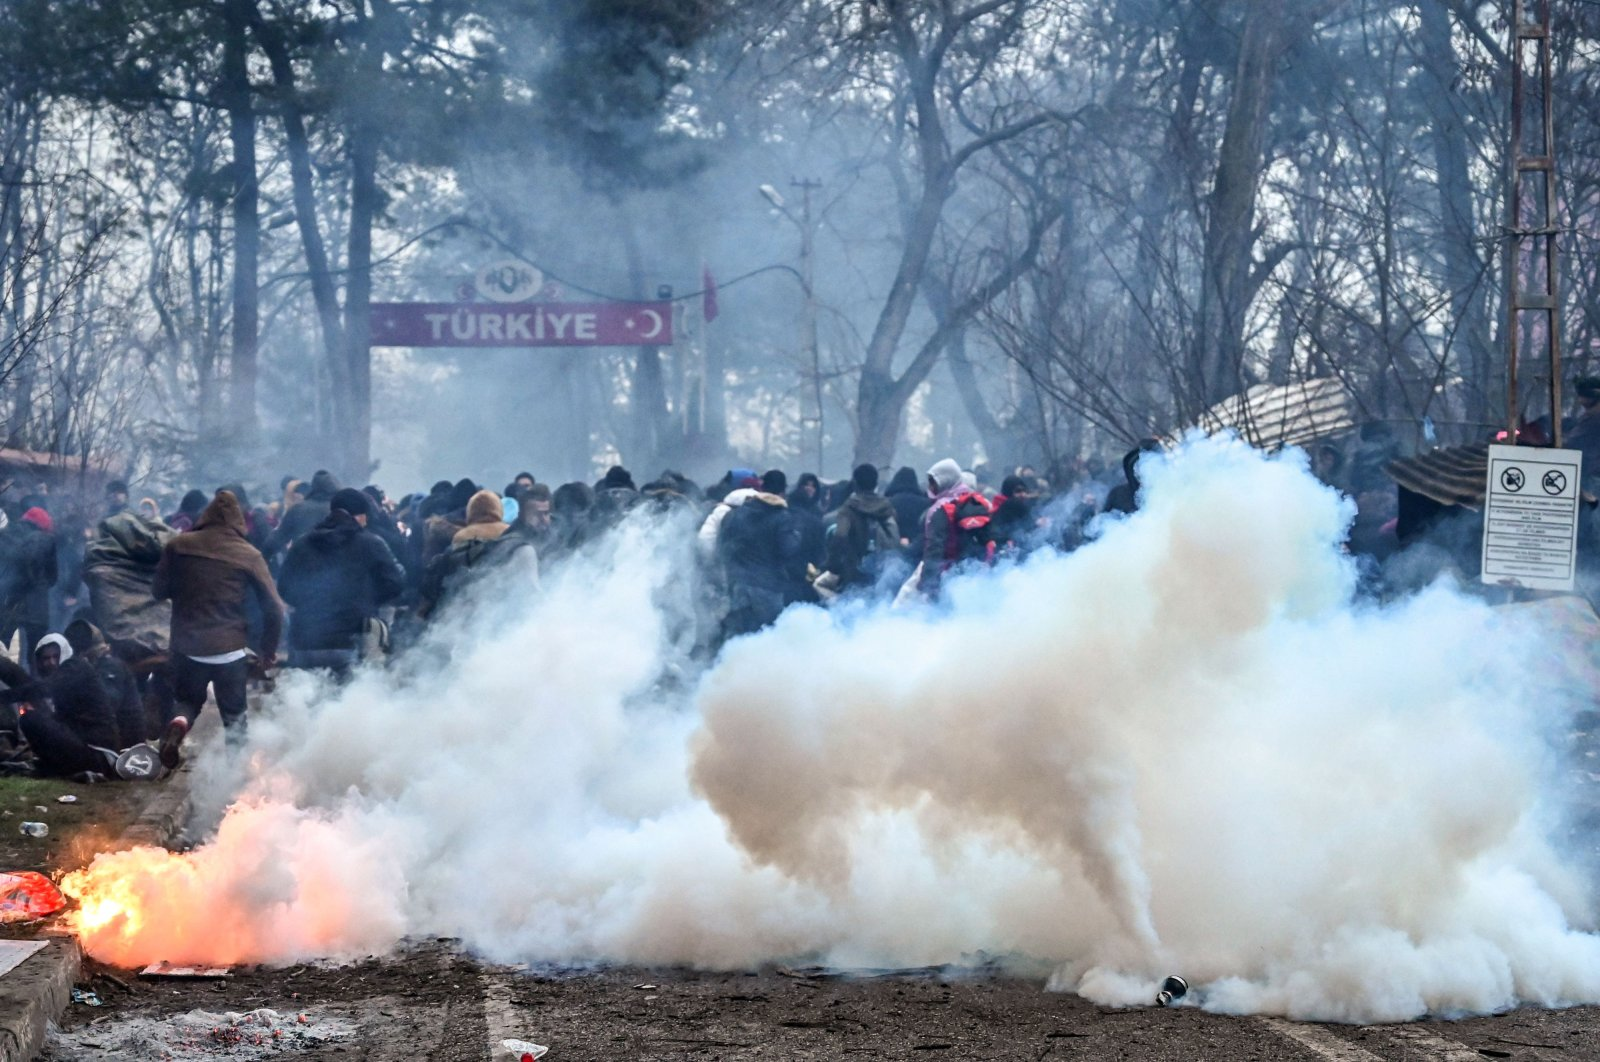 Migrants run away as Greek anti-riot police use tear gas on the buffer zone along the Turkey-Greece border in Edirne's Pazarkule, Turkey, Feb. 29, 2020. (AFP Photo)